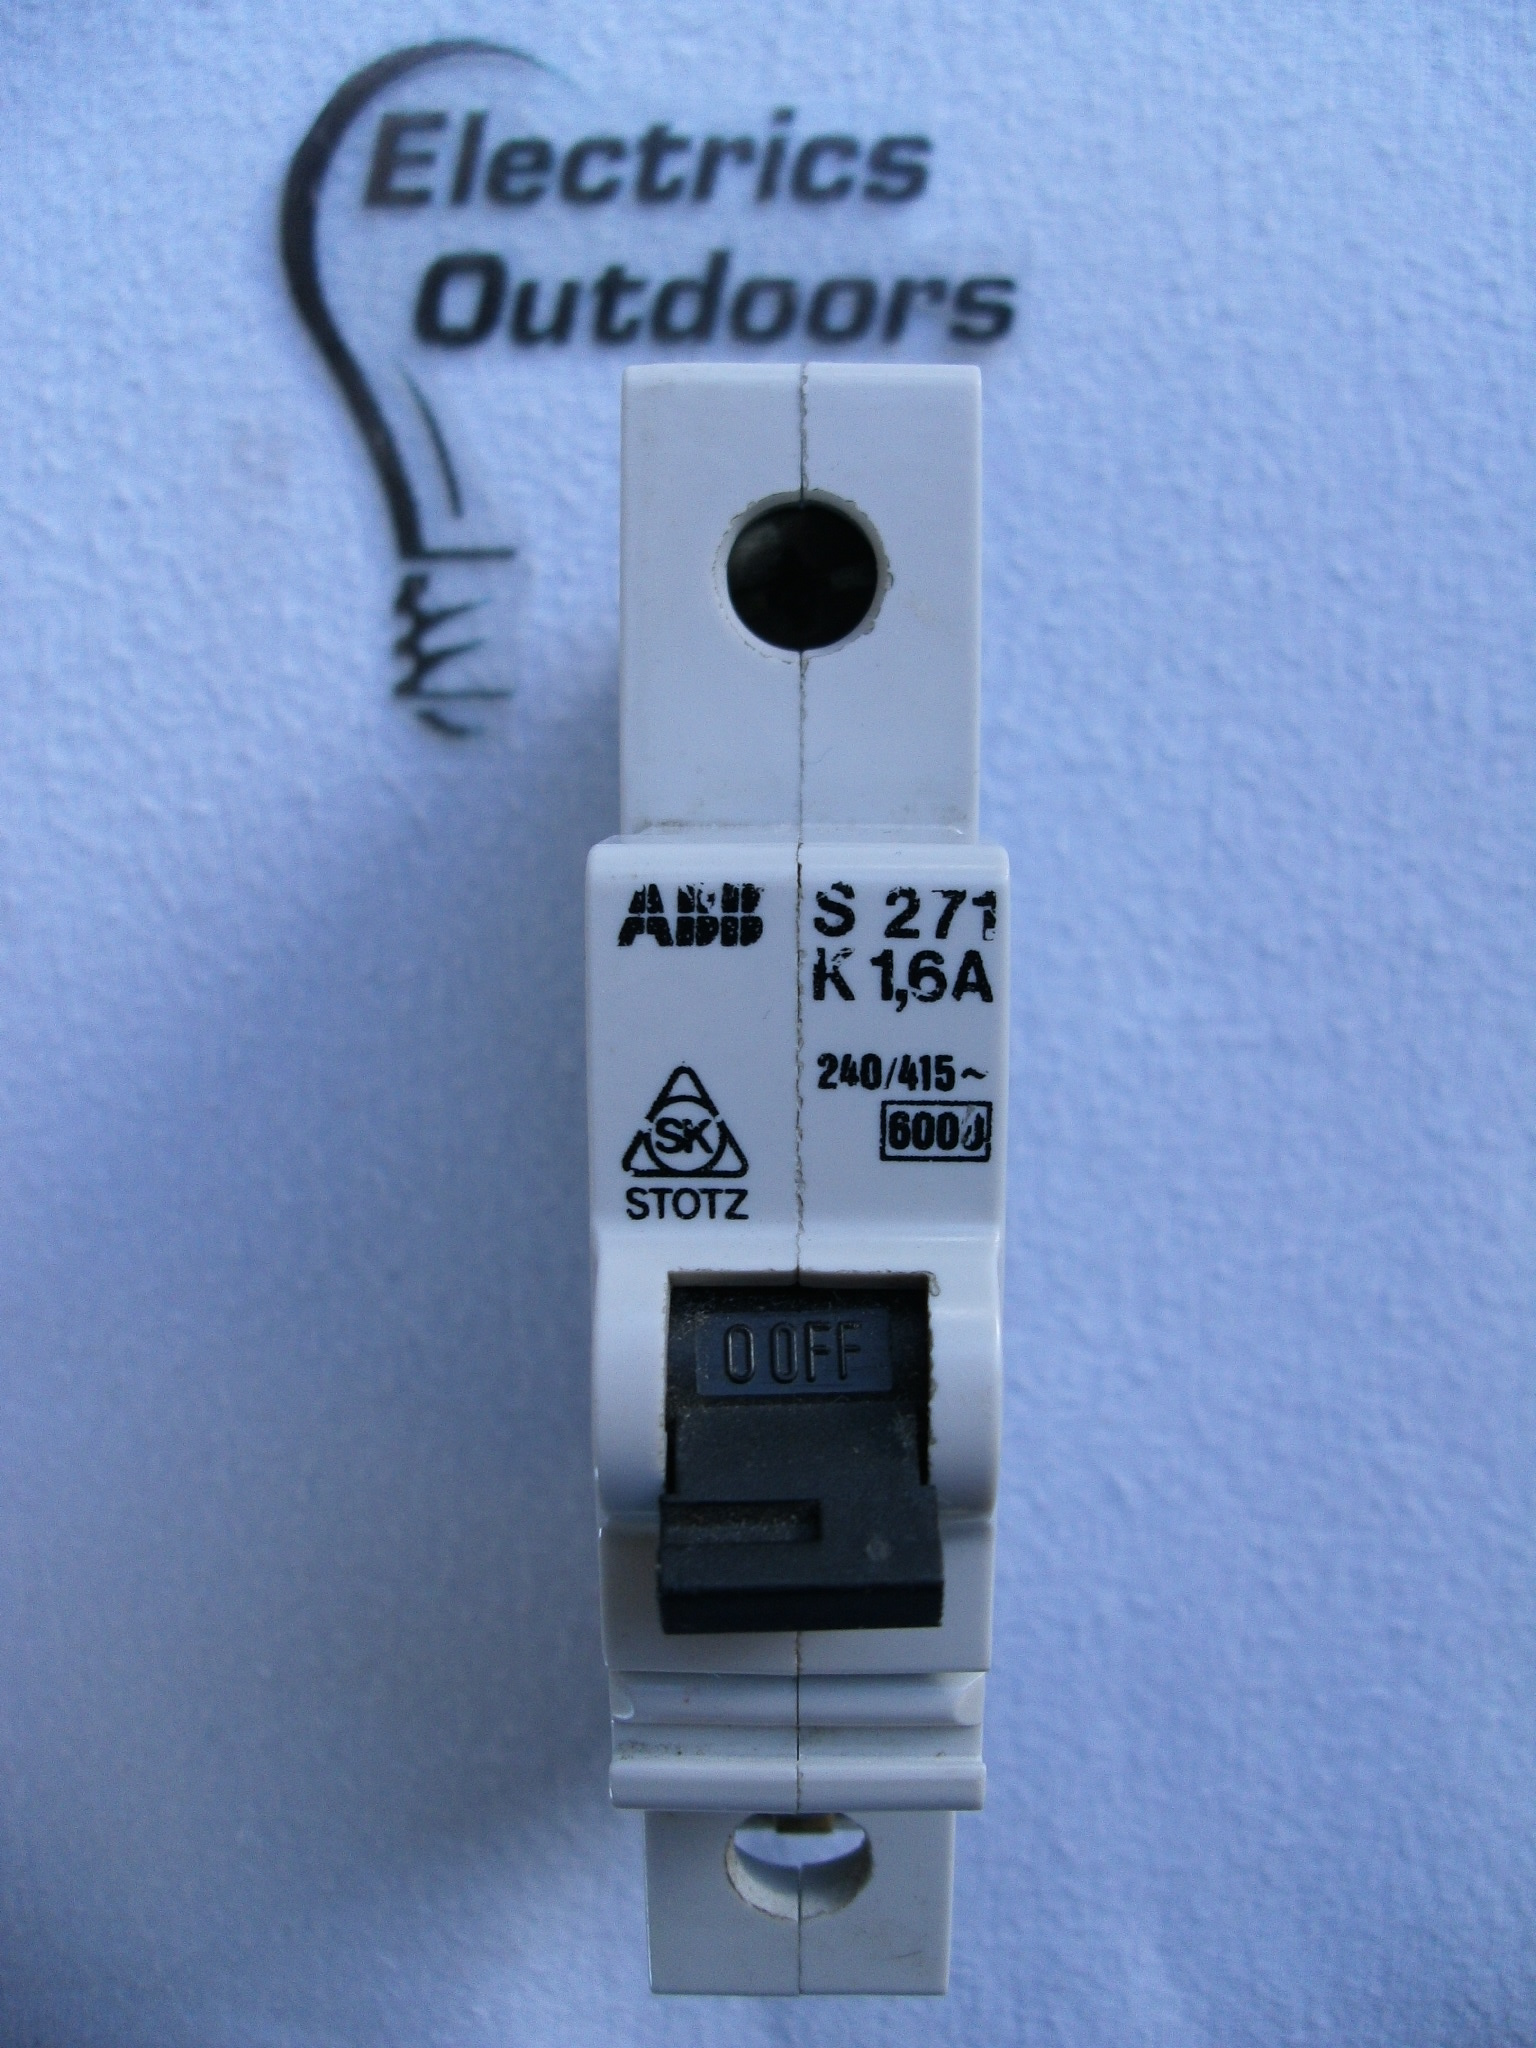 ABB 1,6 AMP TYPE K 6 kA SINGLE POLE MCB CIRCUIT BREAKER 240/415V